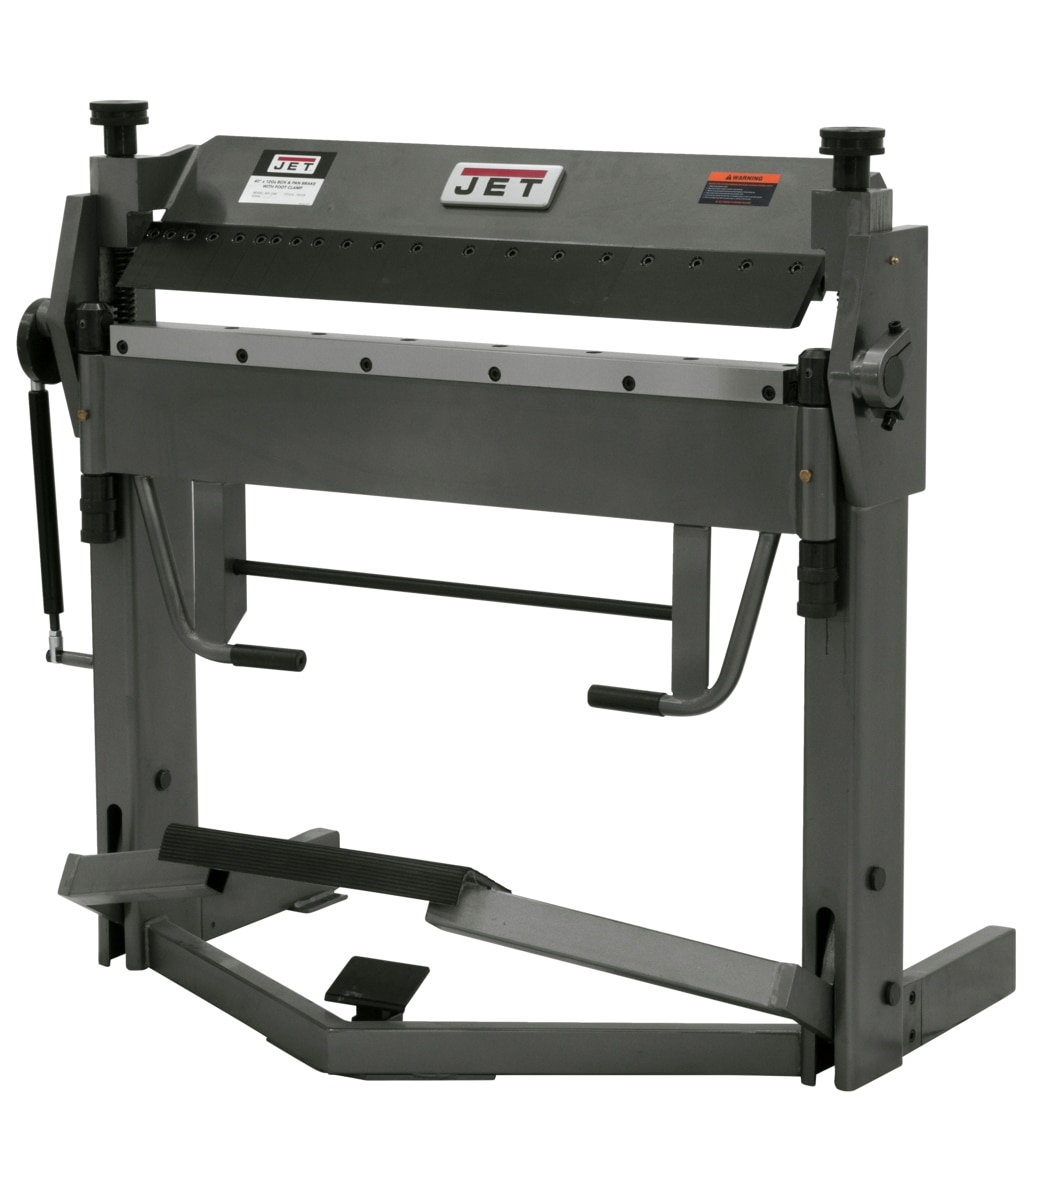 "BPF-1240, 40"" x 12 Gauge Box & Pan Brake With Foot Clamp"